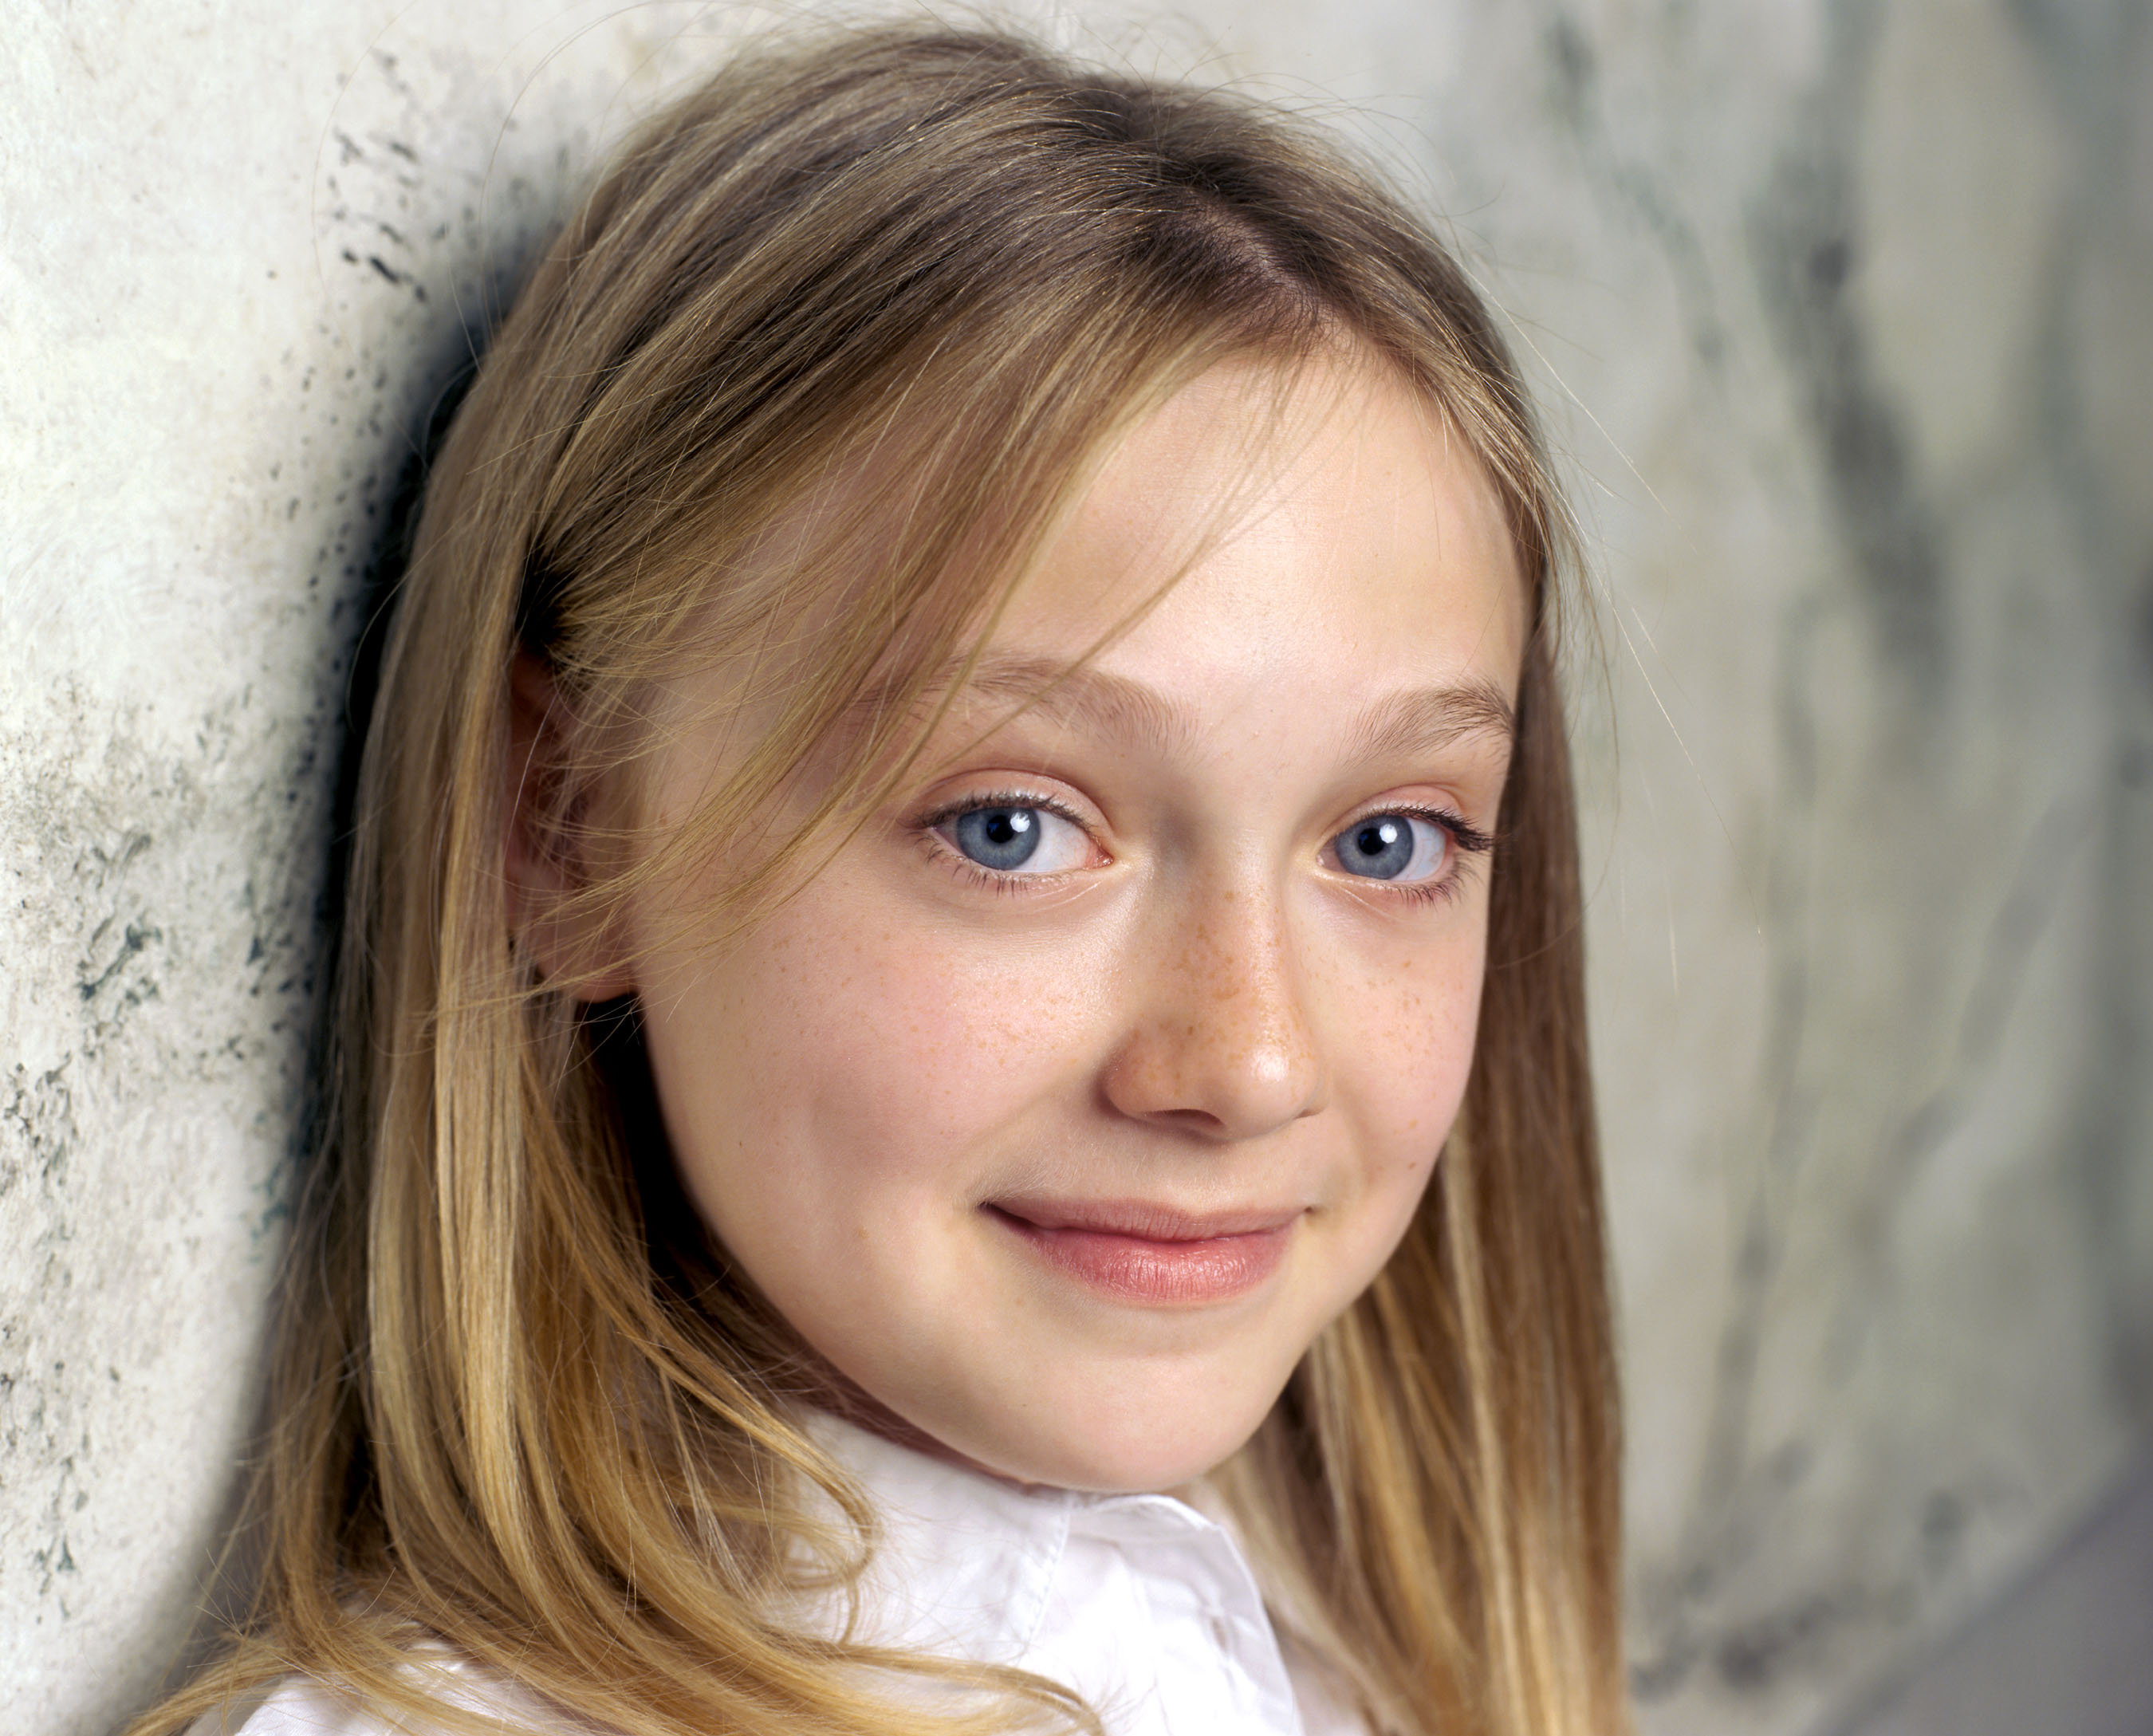 celebrity photos dakota fanning dakota fanning photo 94 1 vote Dakota Fanning